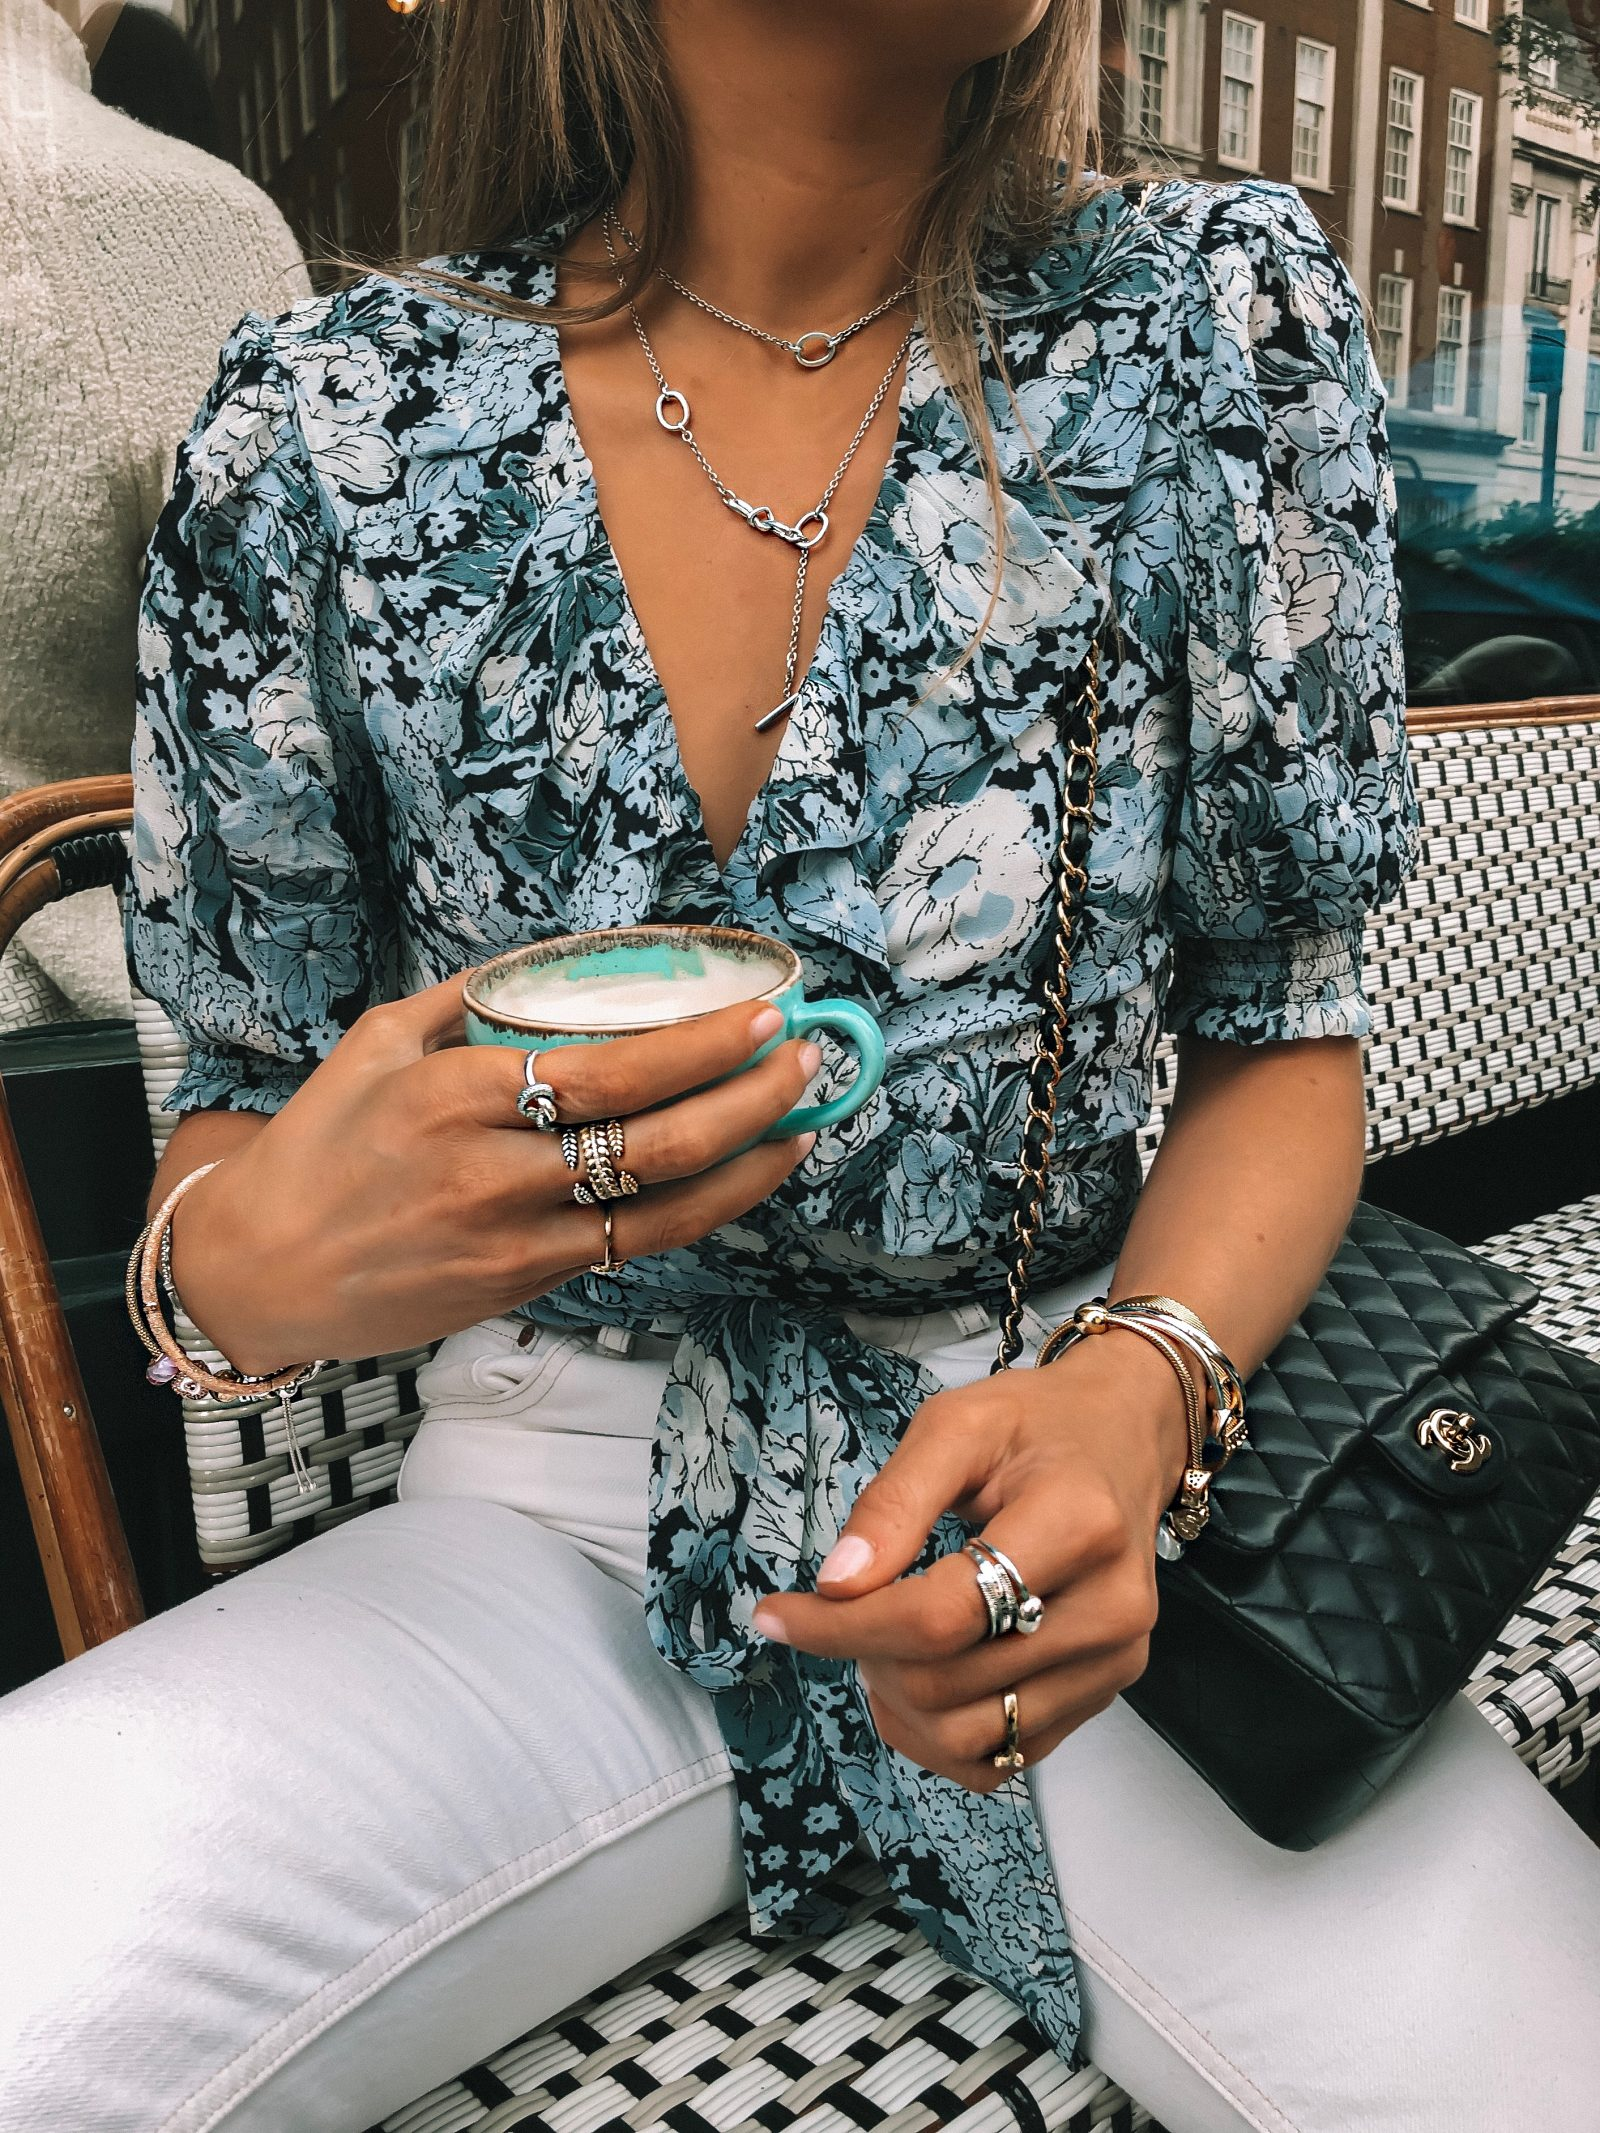 Pandora Ring Stack for Summer in London with beautiful blue floral Ganni Wrap Top - Amazing Pandora Discount Code - SINEAD15 for 15% off!